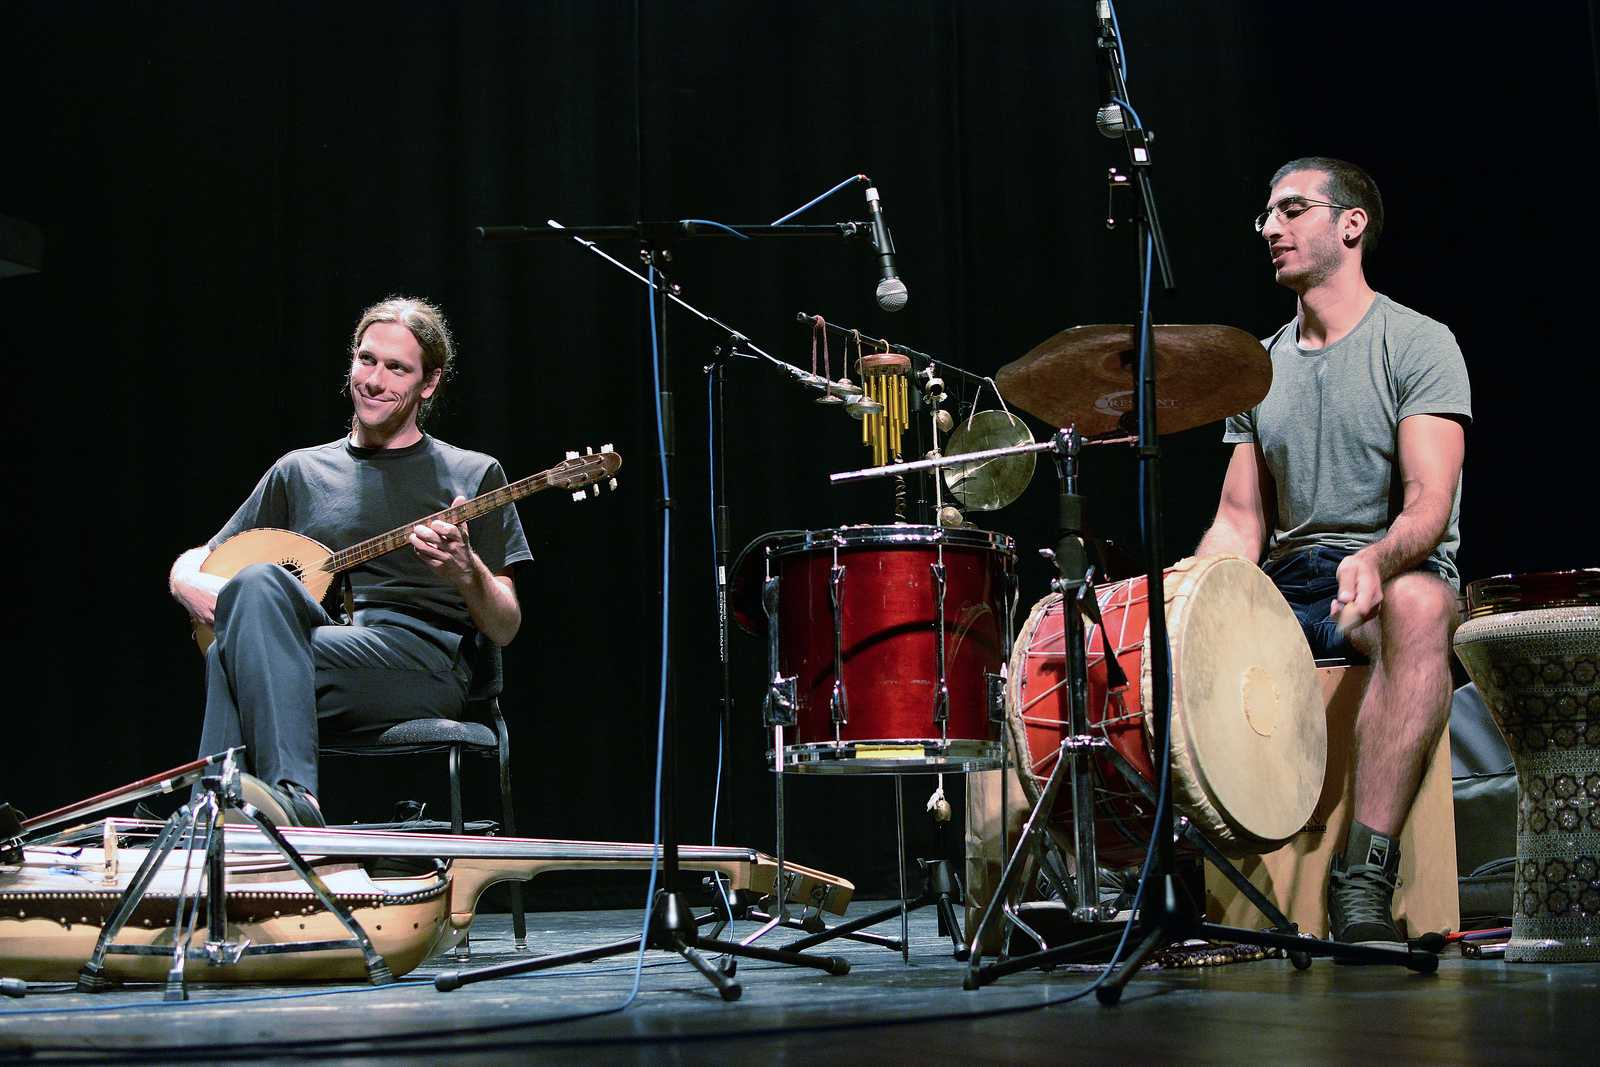 Miles Jay (left) plays the buzuq as Tareq Rantisi (right) beats a drum during an Arabic music seminar in McKenna Theater on Saturday, Sept. 28, 2013. The seminar was part of Room for Hope, a festival celebrating Palestinian culture. Photo by Philip Houston / Xpress